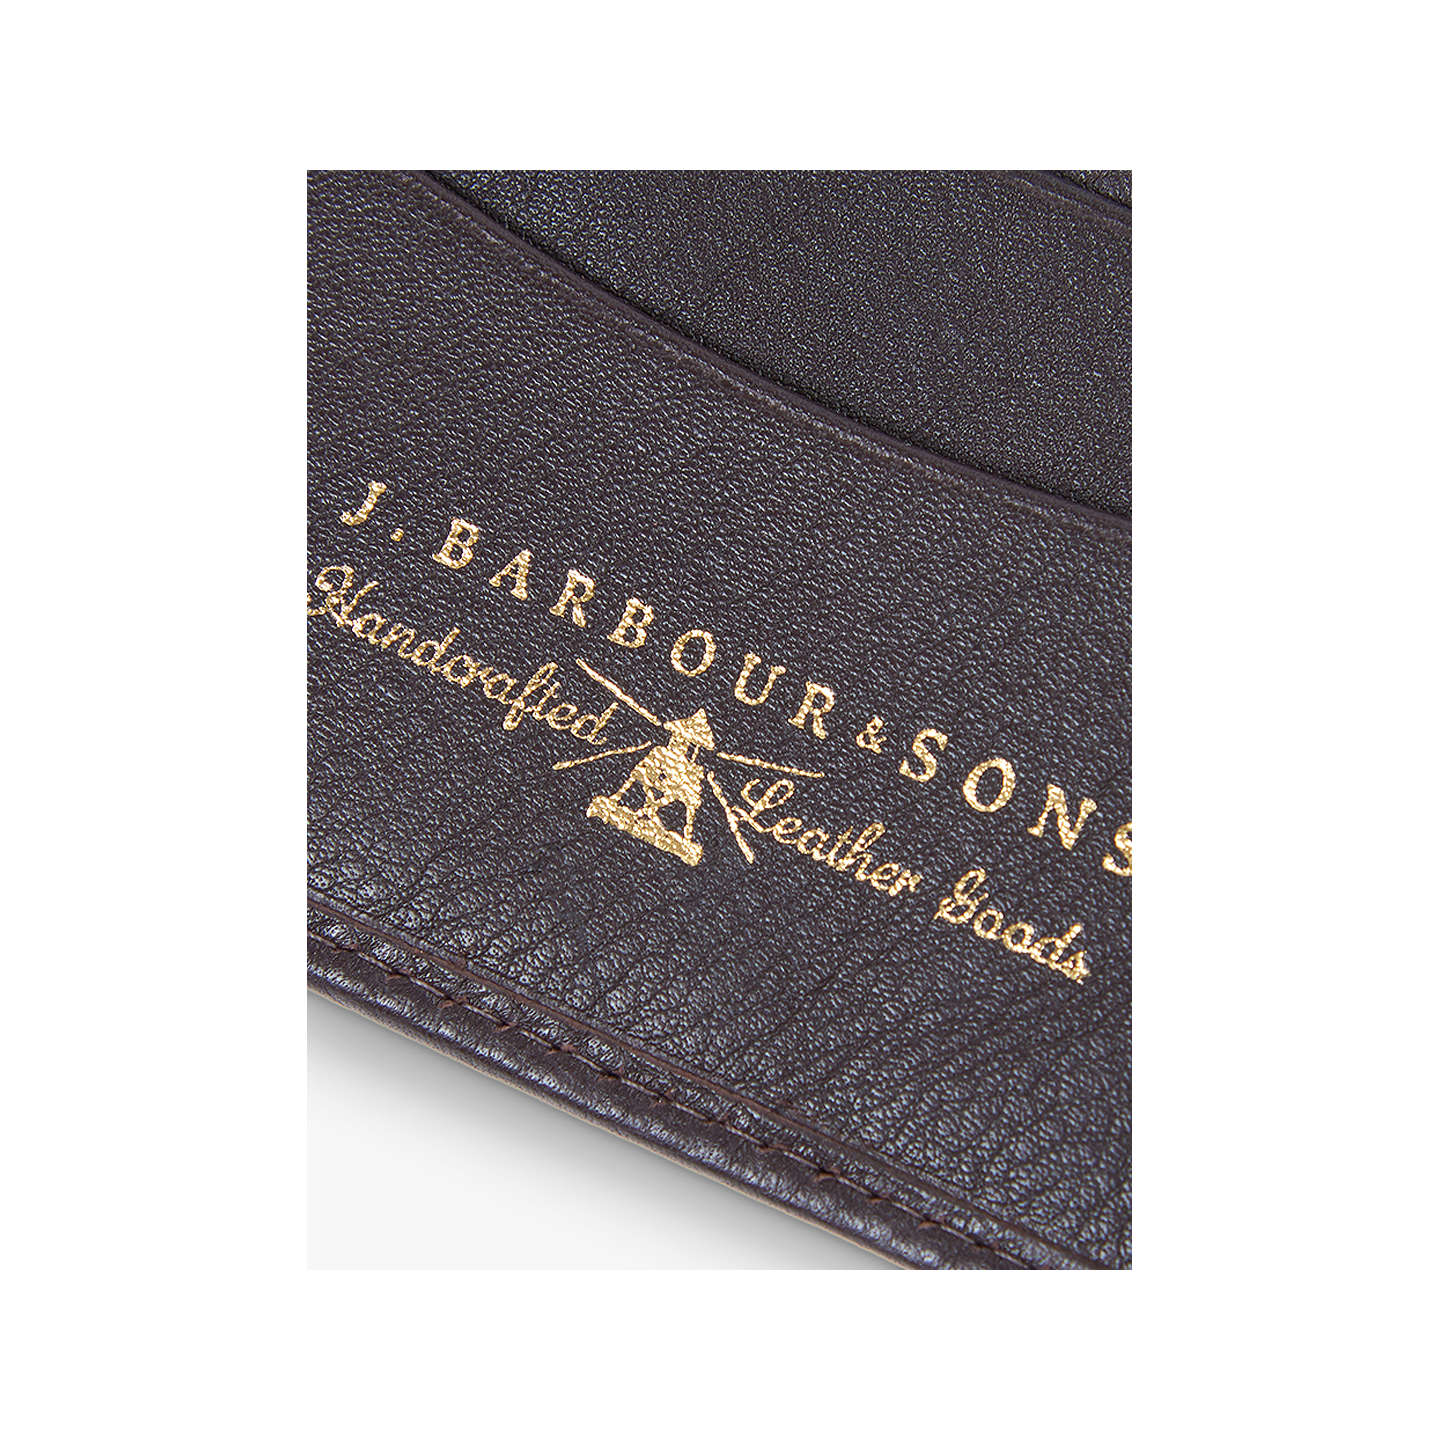 BuyBarbour Grain Leather Wallet, Brown Online at johnlewis.com